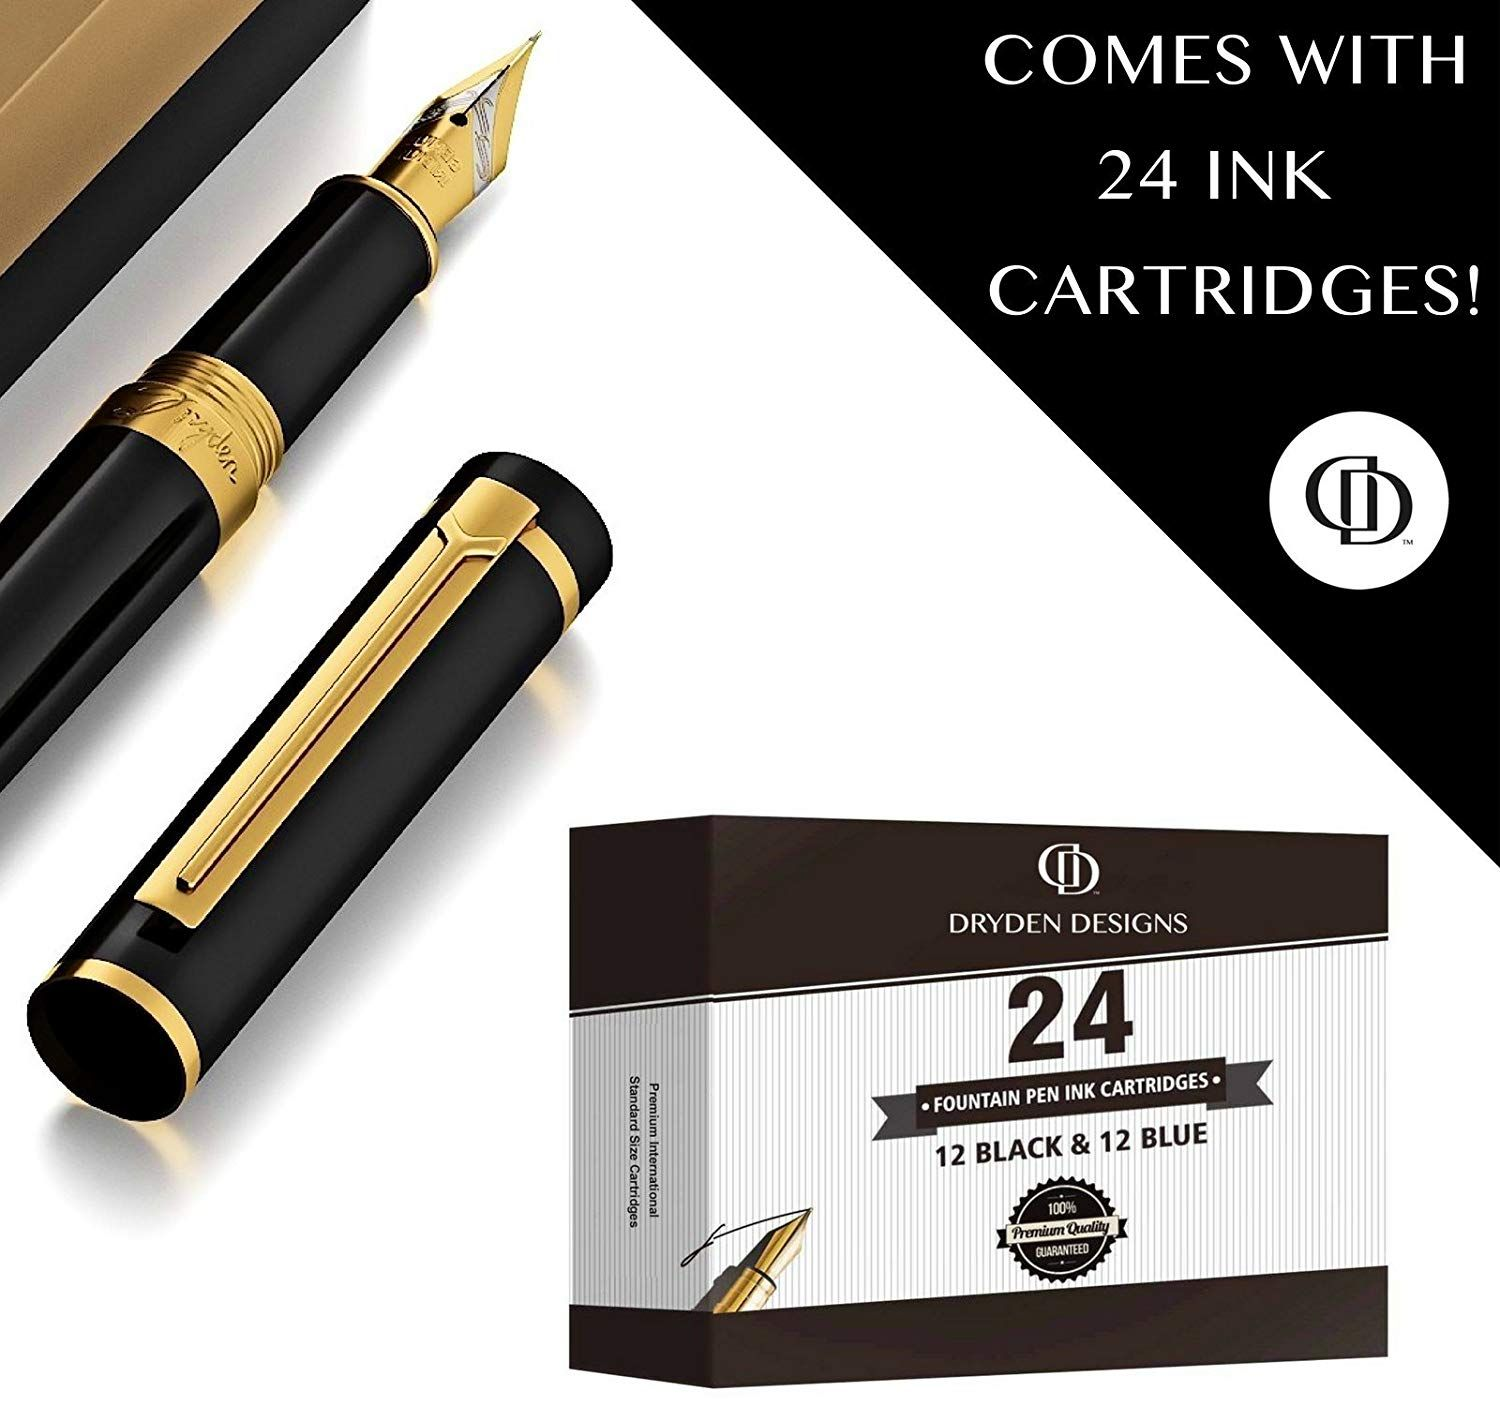 GIFT Standard size BLACK High Quality 100 Fountain Pen Ink Cartridges